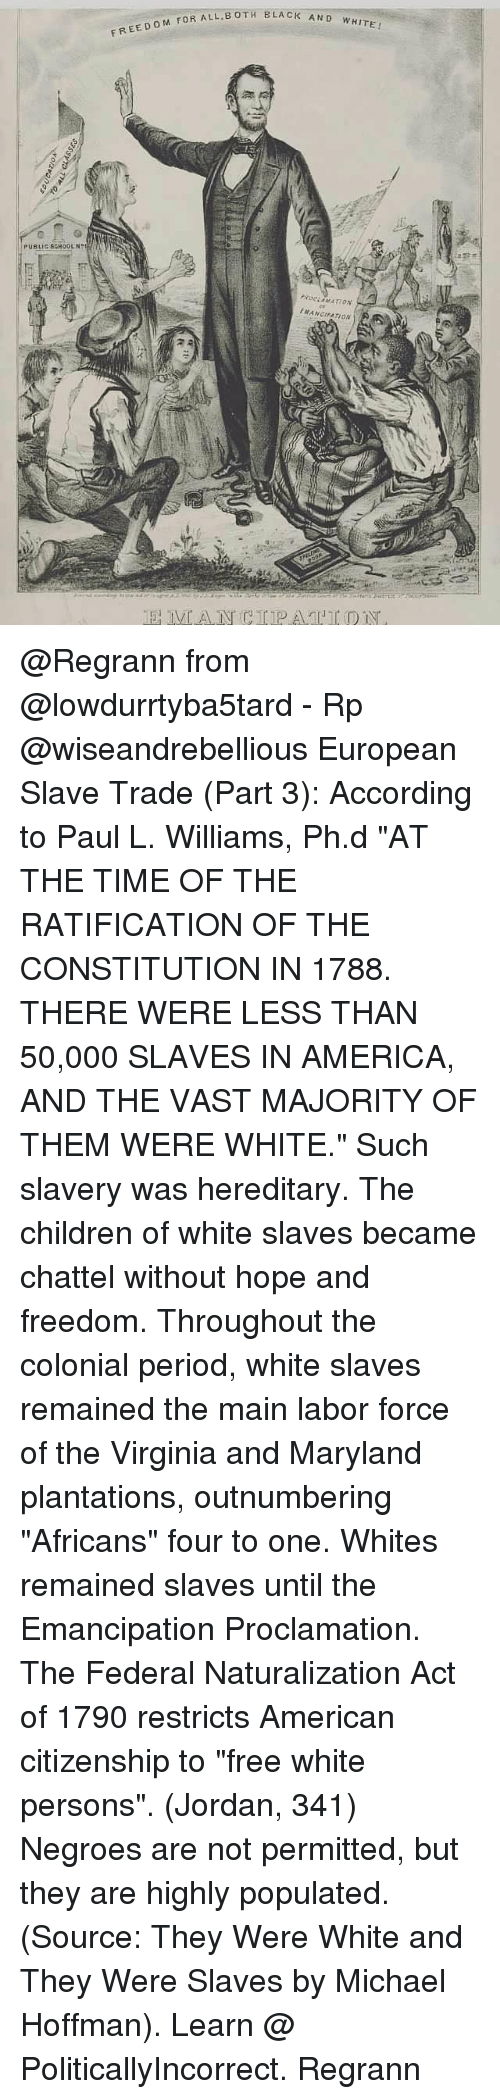 """America, Children, and Memes: BOTH BLACK AND WHITE  FREEDOM FOR ALL.B  PUBLIC SCHOOL Nt  EMANGIPATION @Regrann from @lowdurrtyba5tard - Rp @wiseandrebellious European Slave Trade (Part 3): According to Paul L. Williams, Ph.d """"AT THE TIME OF THE RATIFICATION OF THE CONSTITUTION IN 1788. THERE WERE LESS THAN 50,000 SLAVES IN AMERICA, AND THE VAST MAJORITY OF THEM WERE WHITE."""" Such slavery was hereditary. The children of white slaves became chattel without hope and freedom. Throughout the colonial period, white slaves remained the main labor force of the Virginia and Maryland plantations, outnumbering """"Africans"""" four to one. Whites remained slaves until the Emancipation Proclamation. The Federal Naturalization Act of 1790 restricts American citizenship to """"free white persons"""". (Jordan, 341) Negroes are not permitted, but they are highly populated. (Source: They Were White and They Were Slaves by Michael Hoffman). Learn @ PoliticallyIncorrect. Regrann"""